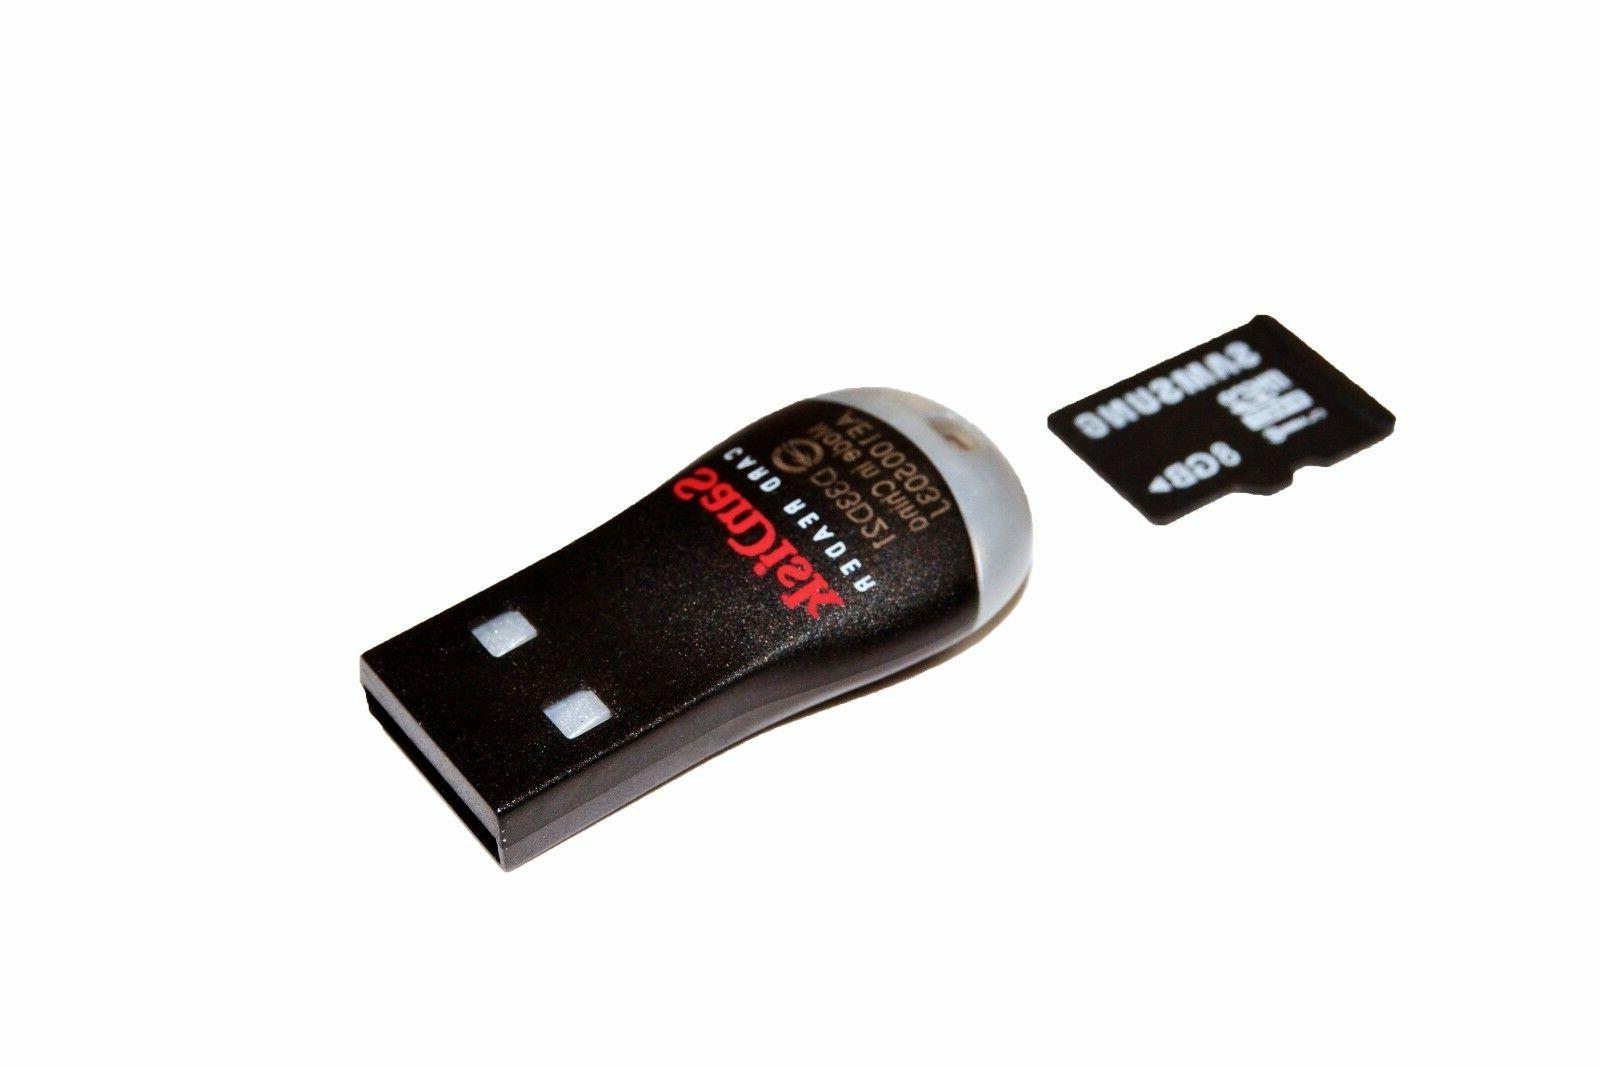 2x SDDR-121-G35 MobileMate USB Card Drive Reader